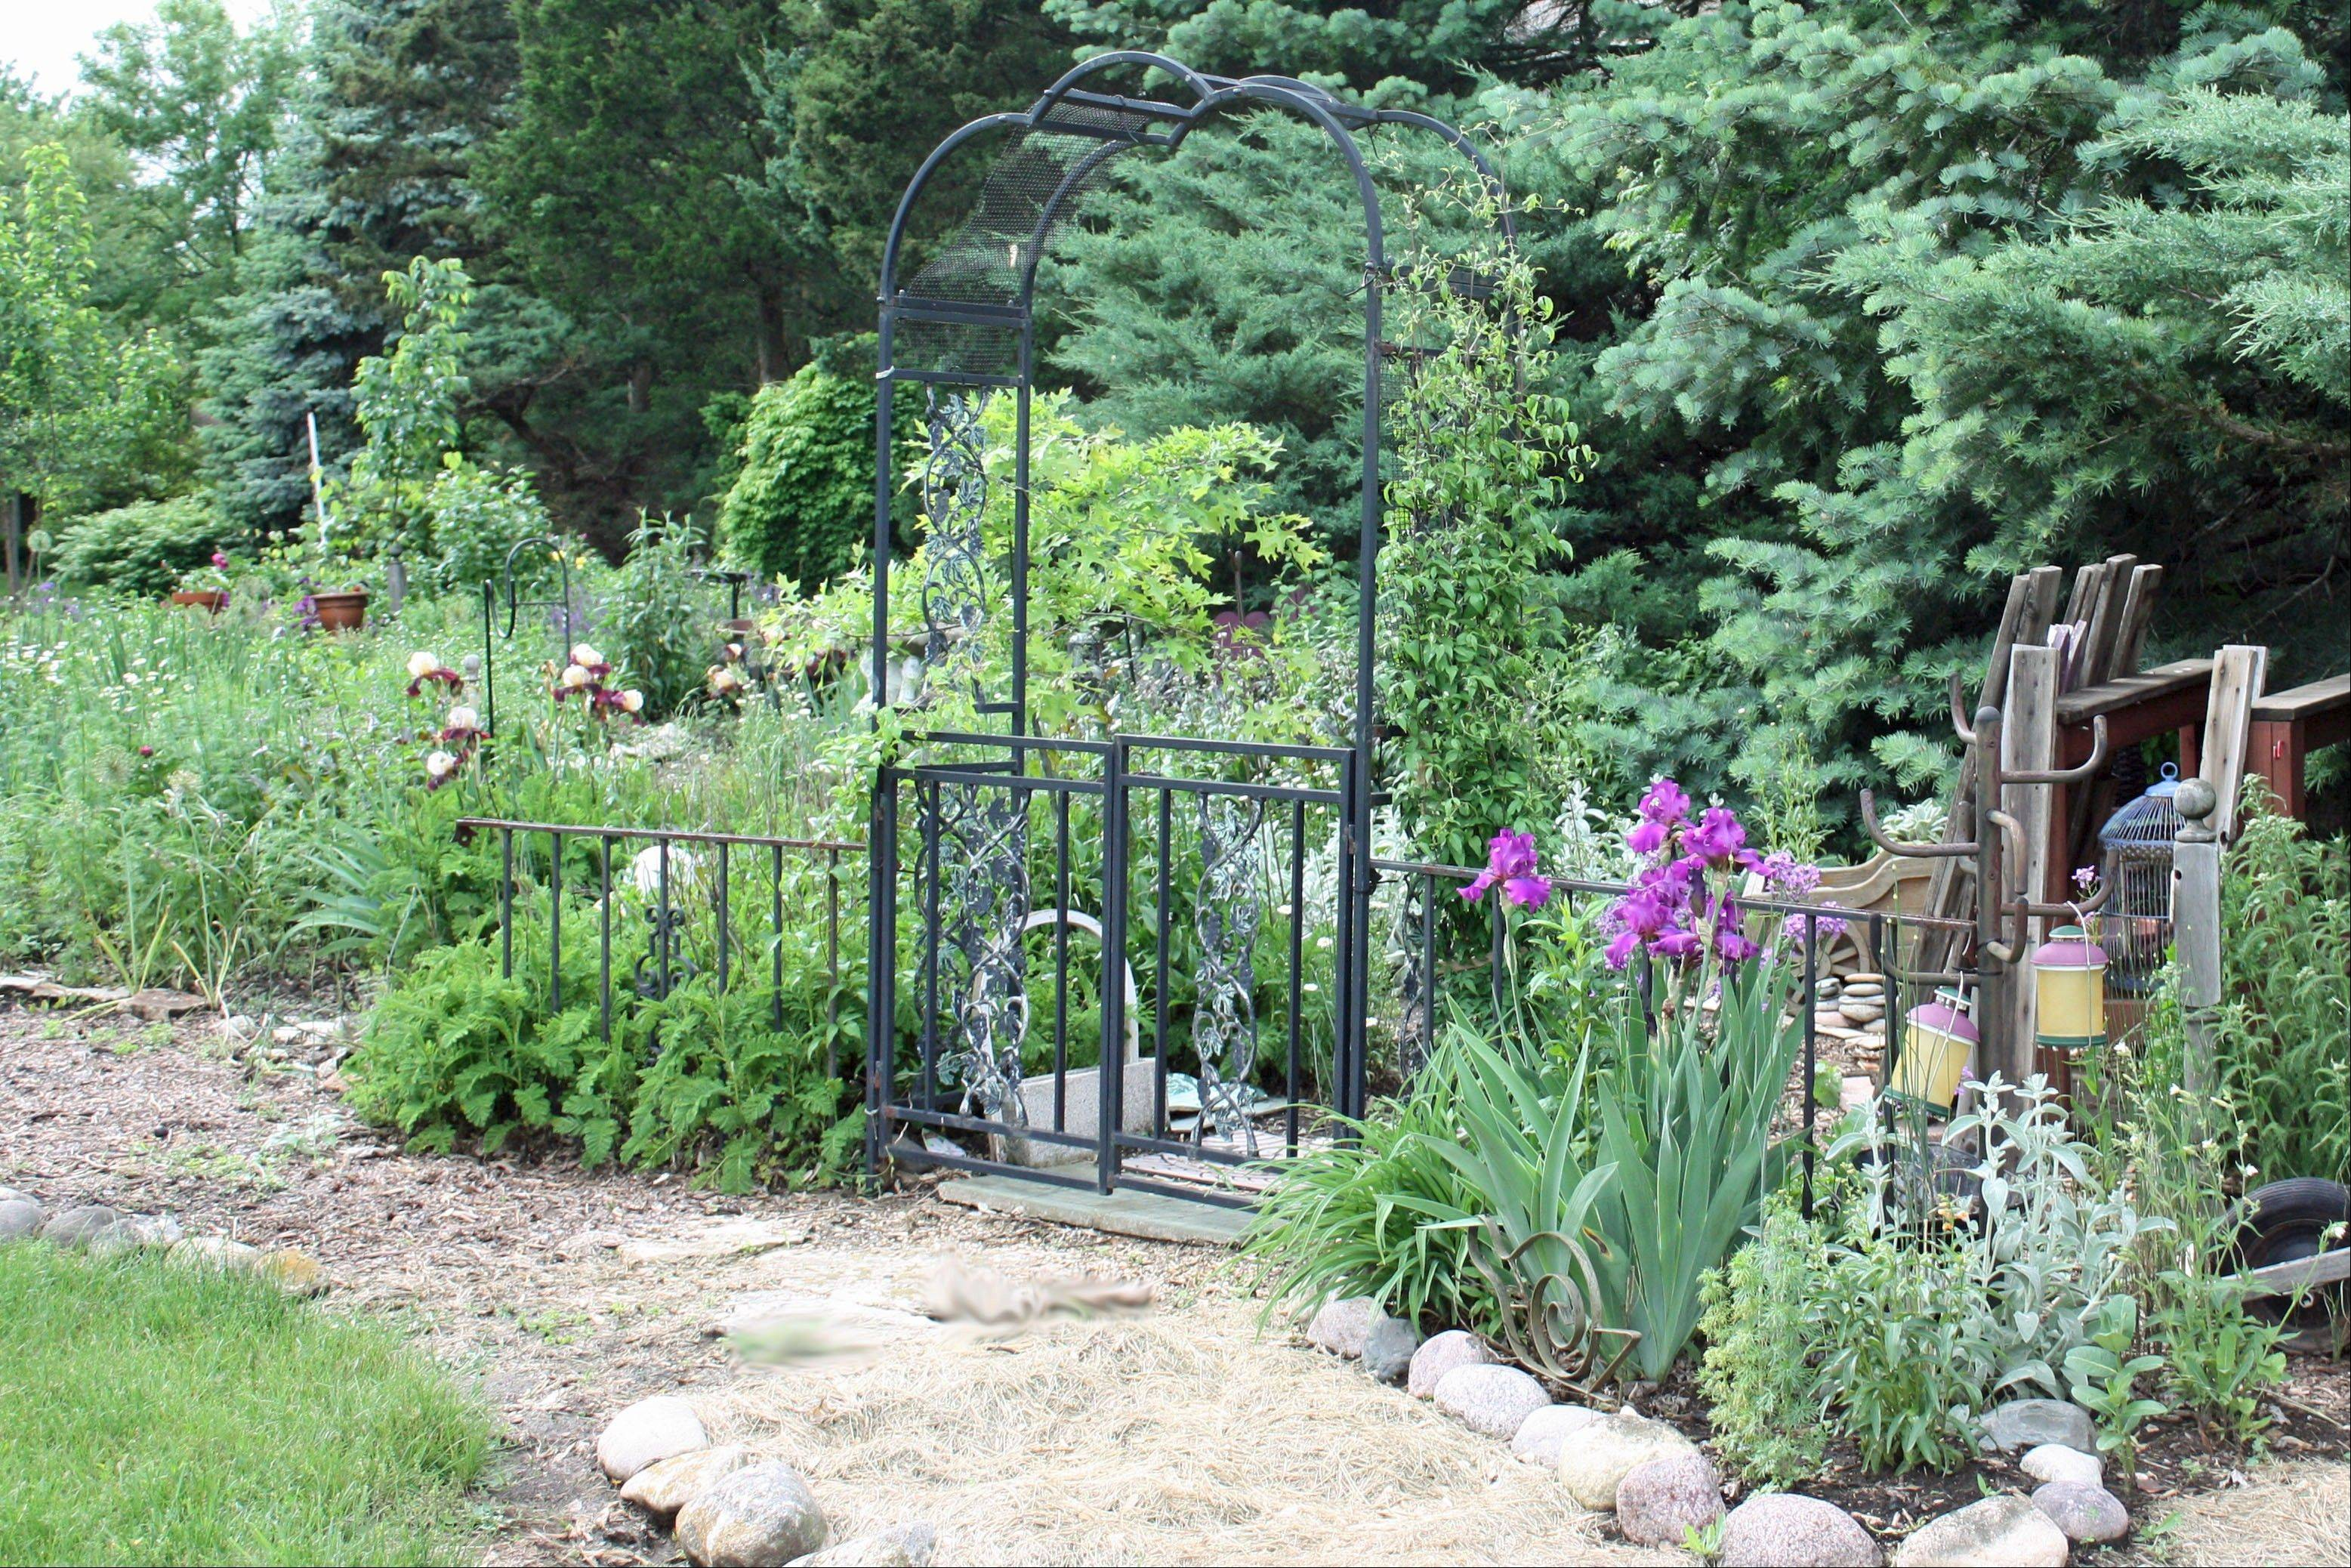 Among the interesting re-purposed finds in the Buehlers' garden is a metal coat rack on the far right with small colorful watering cans hanging from it. The metal garden gate invites visitors to the Buehler garden.